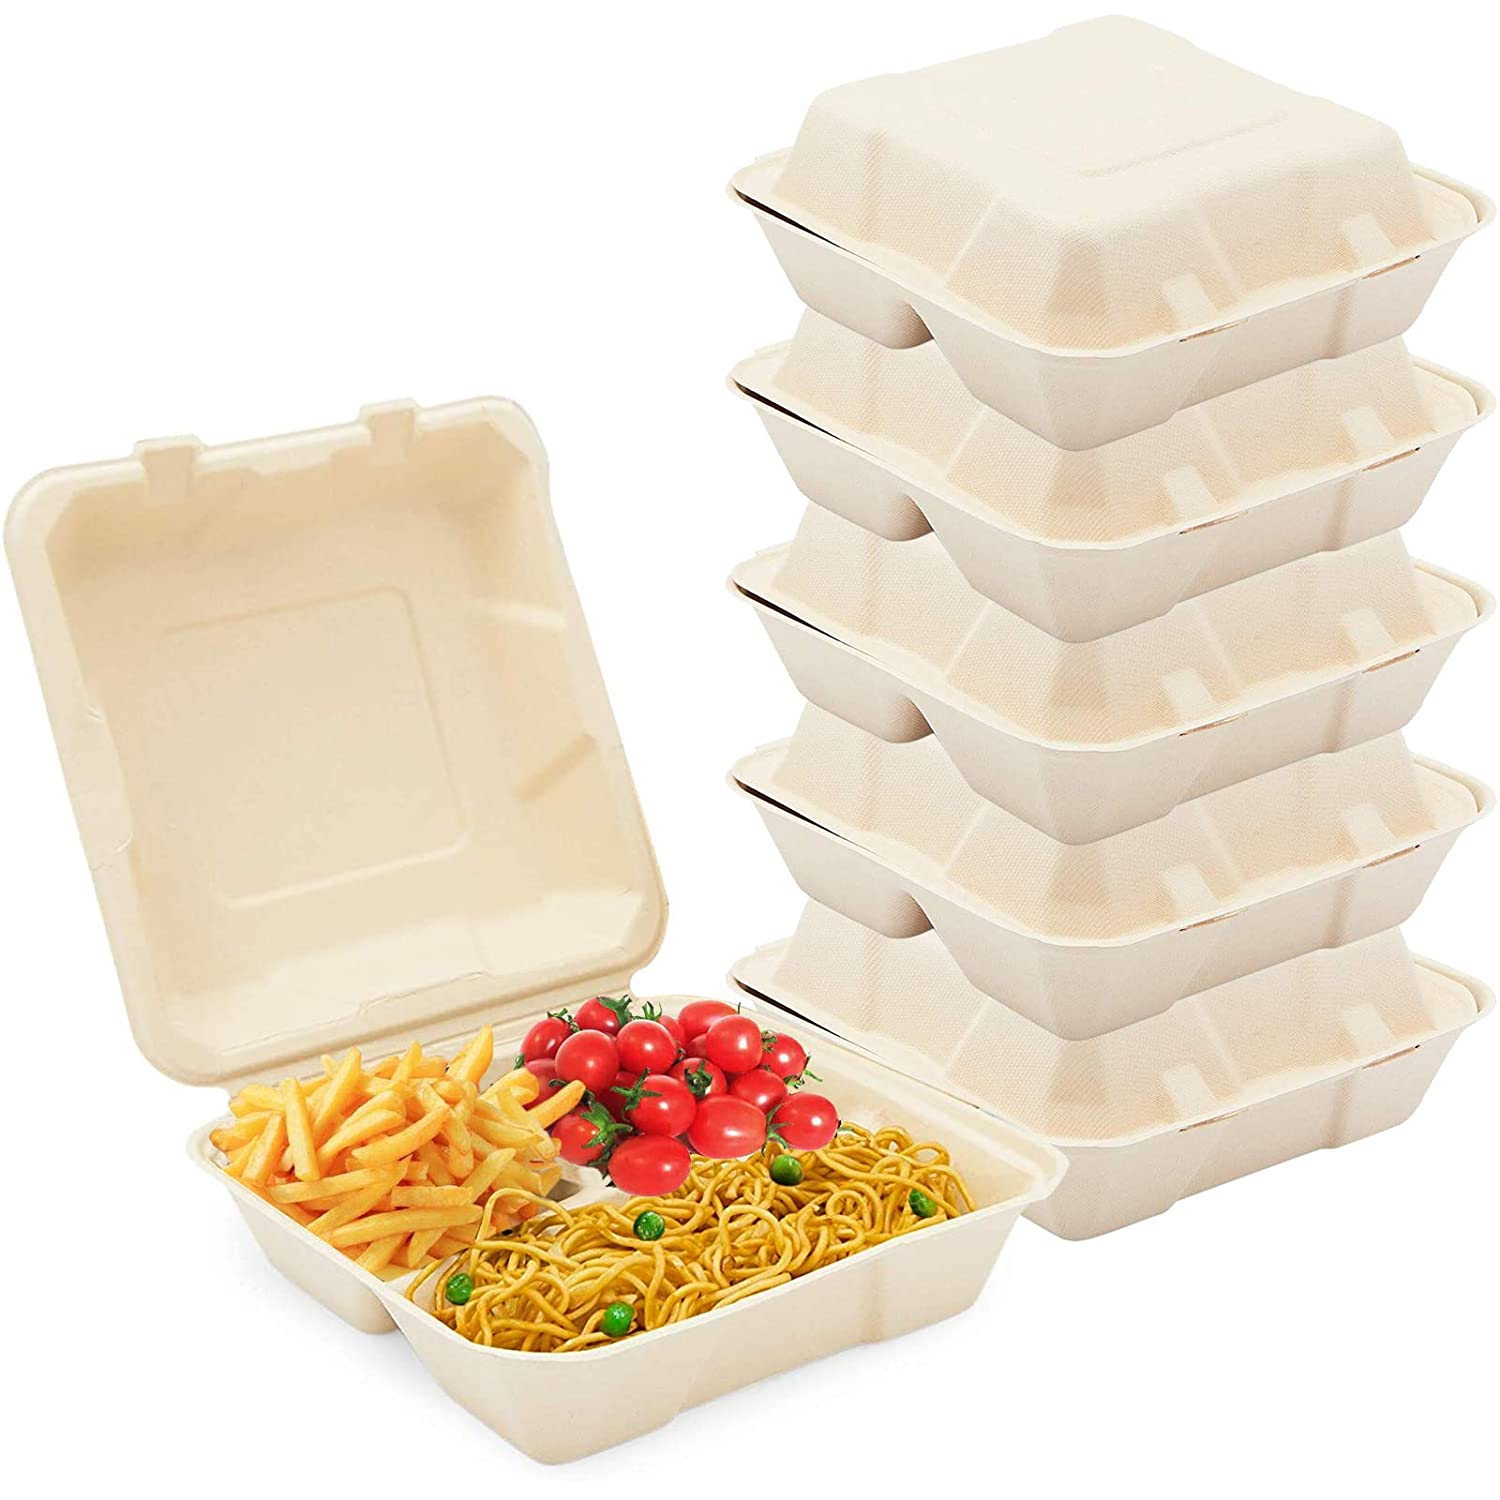 """[30 Pack]8x8x3"""" Clamshell Food Containers with 3 Compartment - Compostable Take Out Box, 100% Biodegradable Sugarcane, Styrofoam and Plastic Alternative, Microwave Safe, to Go Lunch and Meals"""